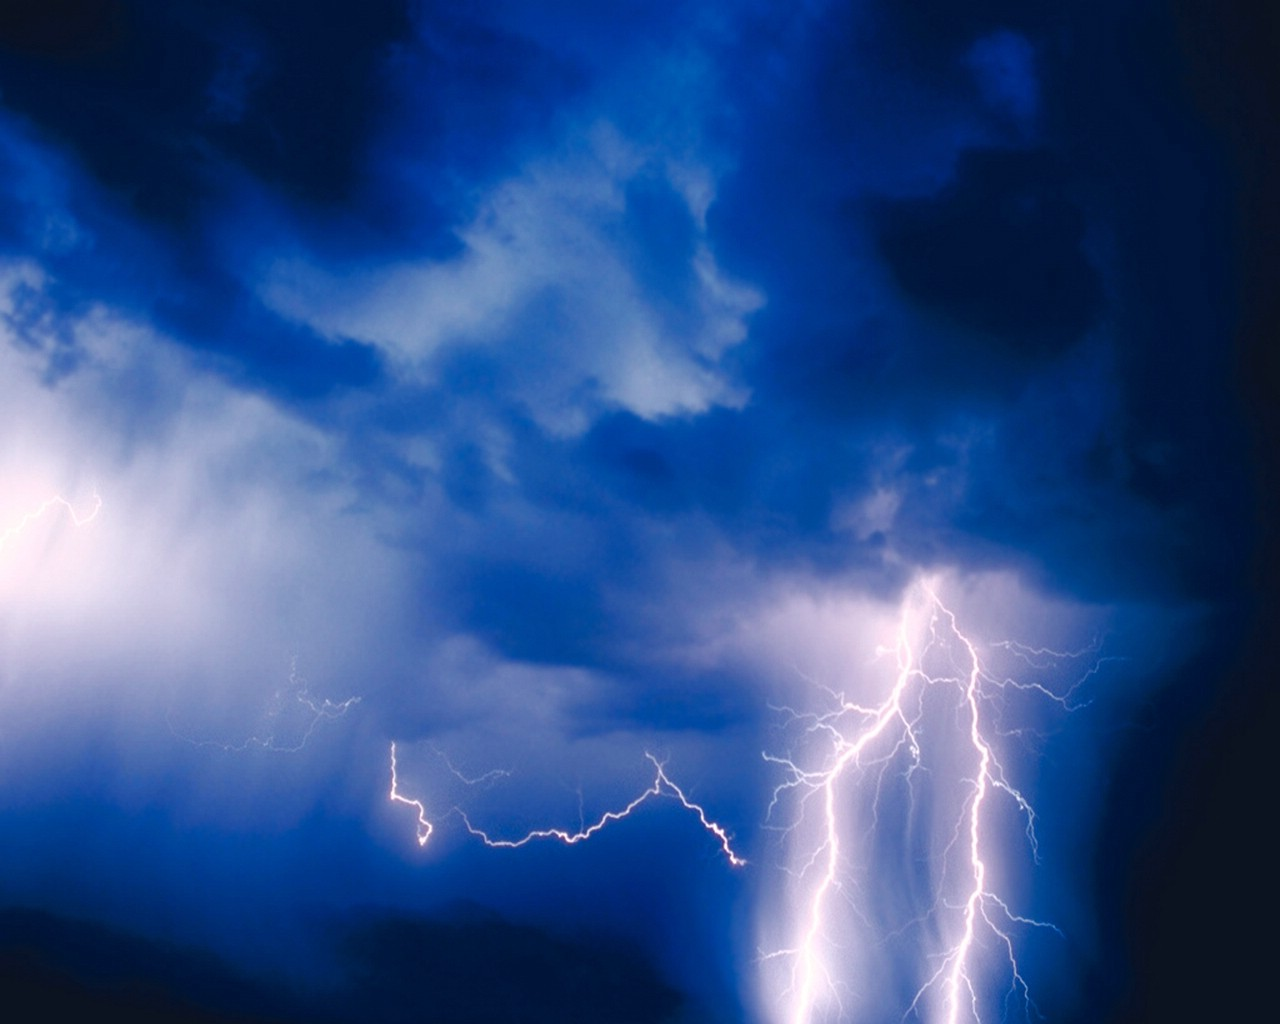 XMWallpapers.com -- wallpaper storms lightning Blue Lightning